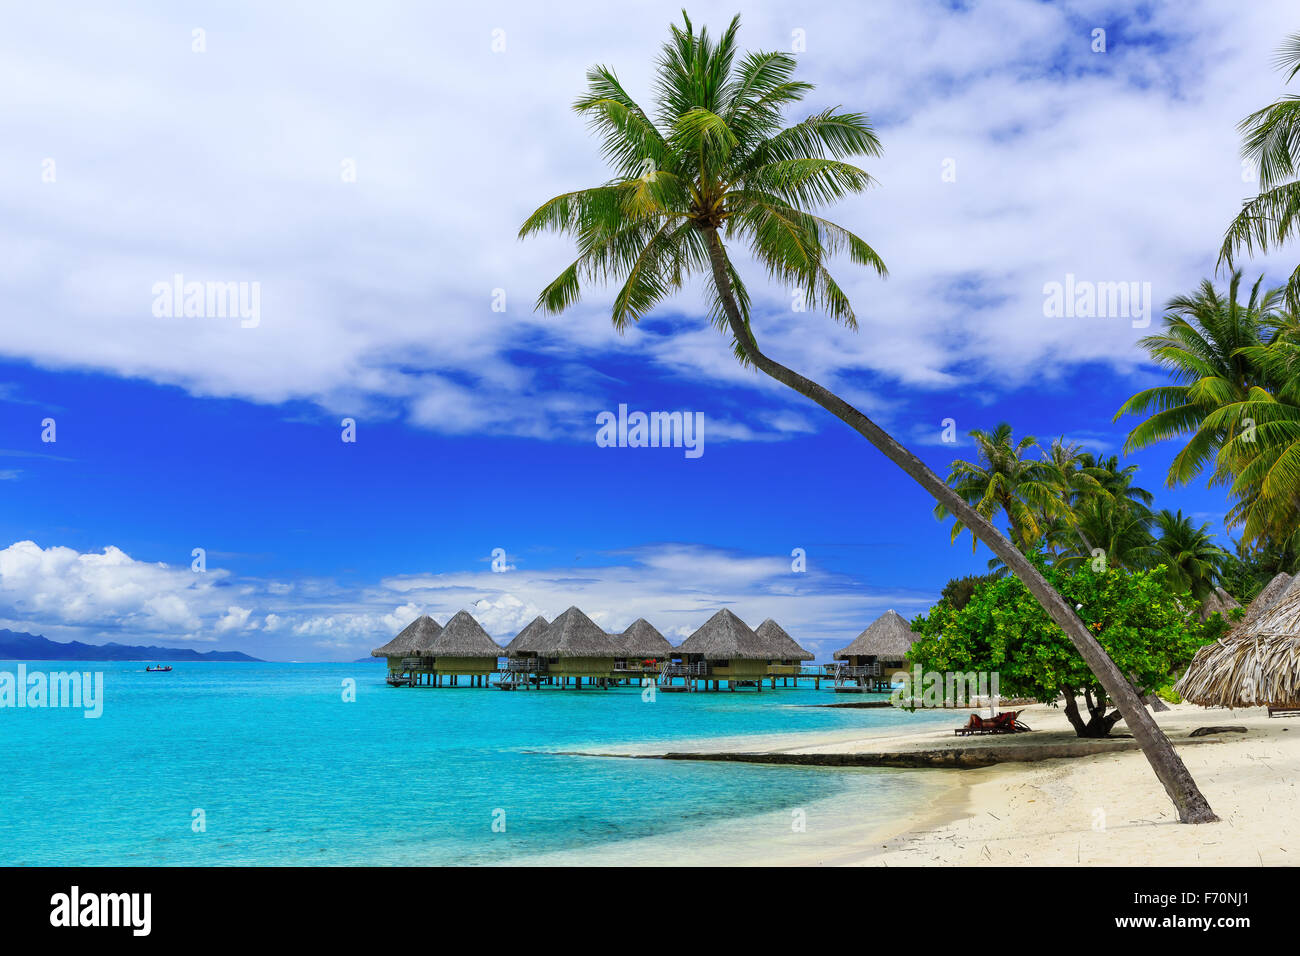 Over-water bungalows of luxury tropical resort, Bora Bora island, near Tahiti, French Polynesia, Pacific ocean - Stock Image